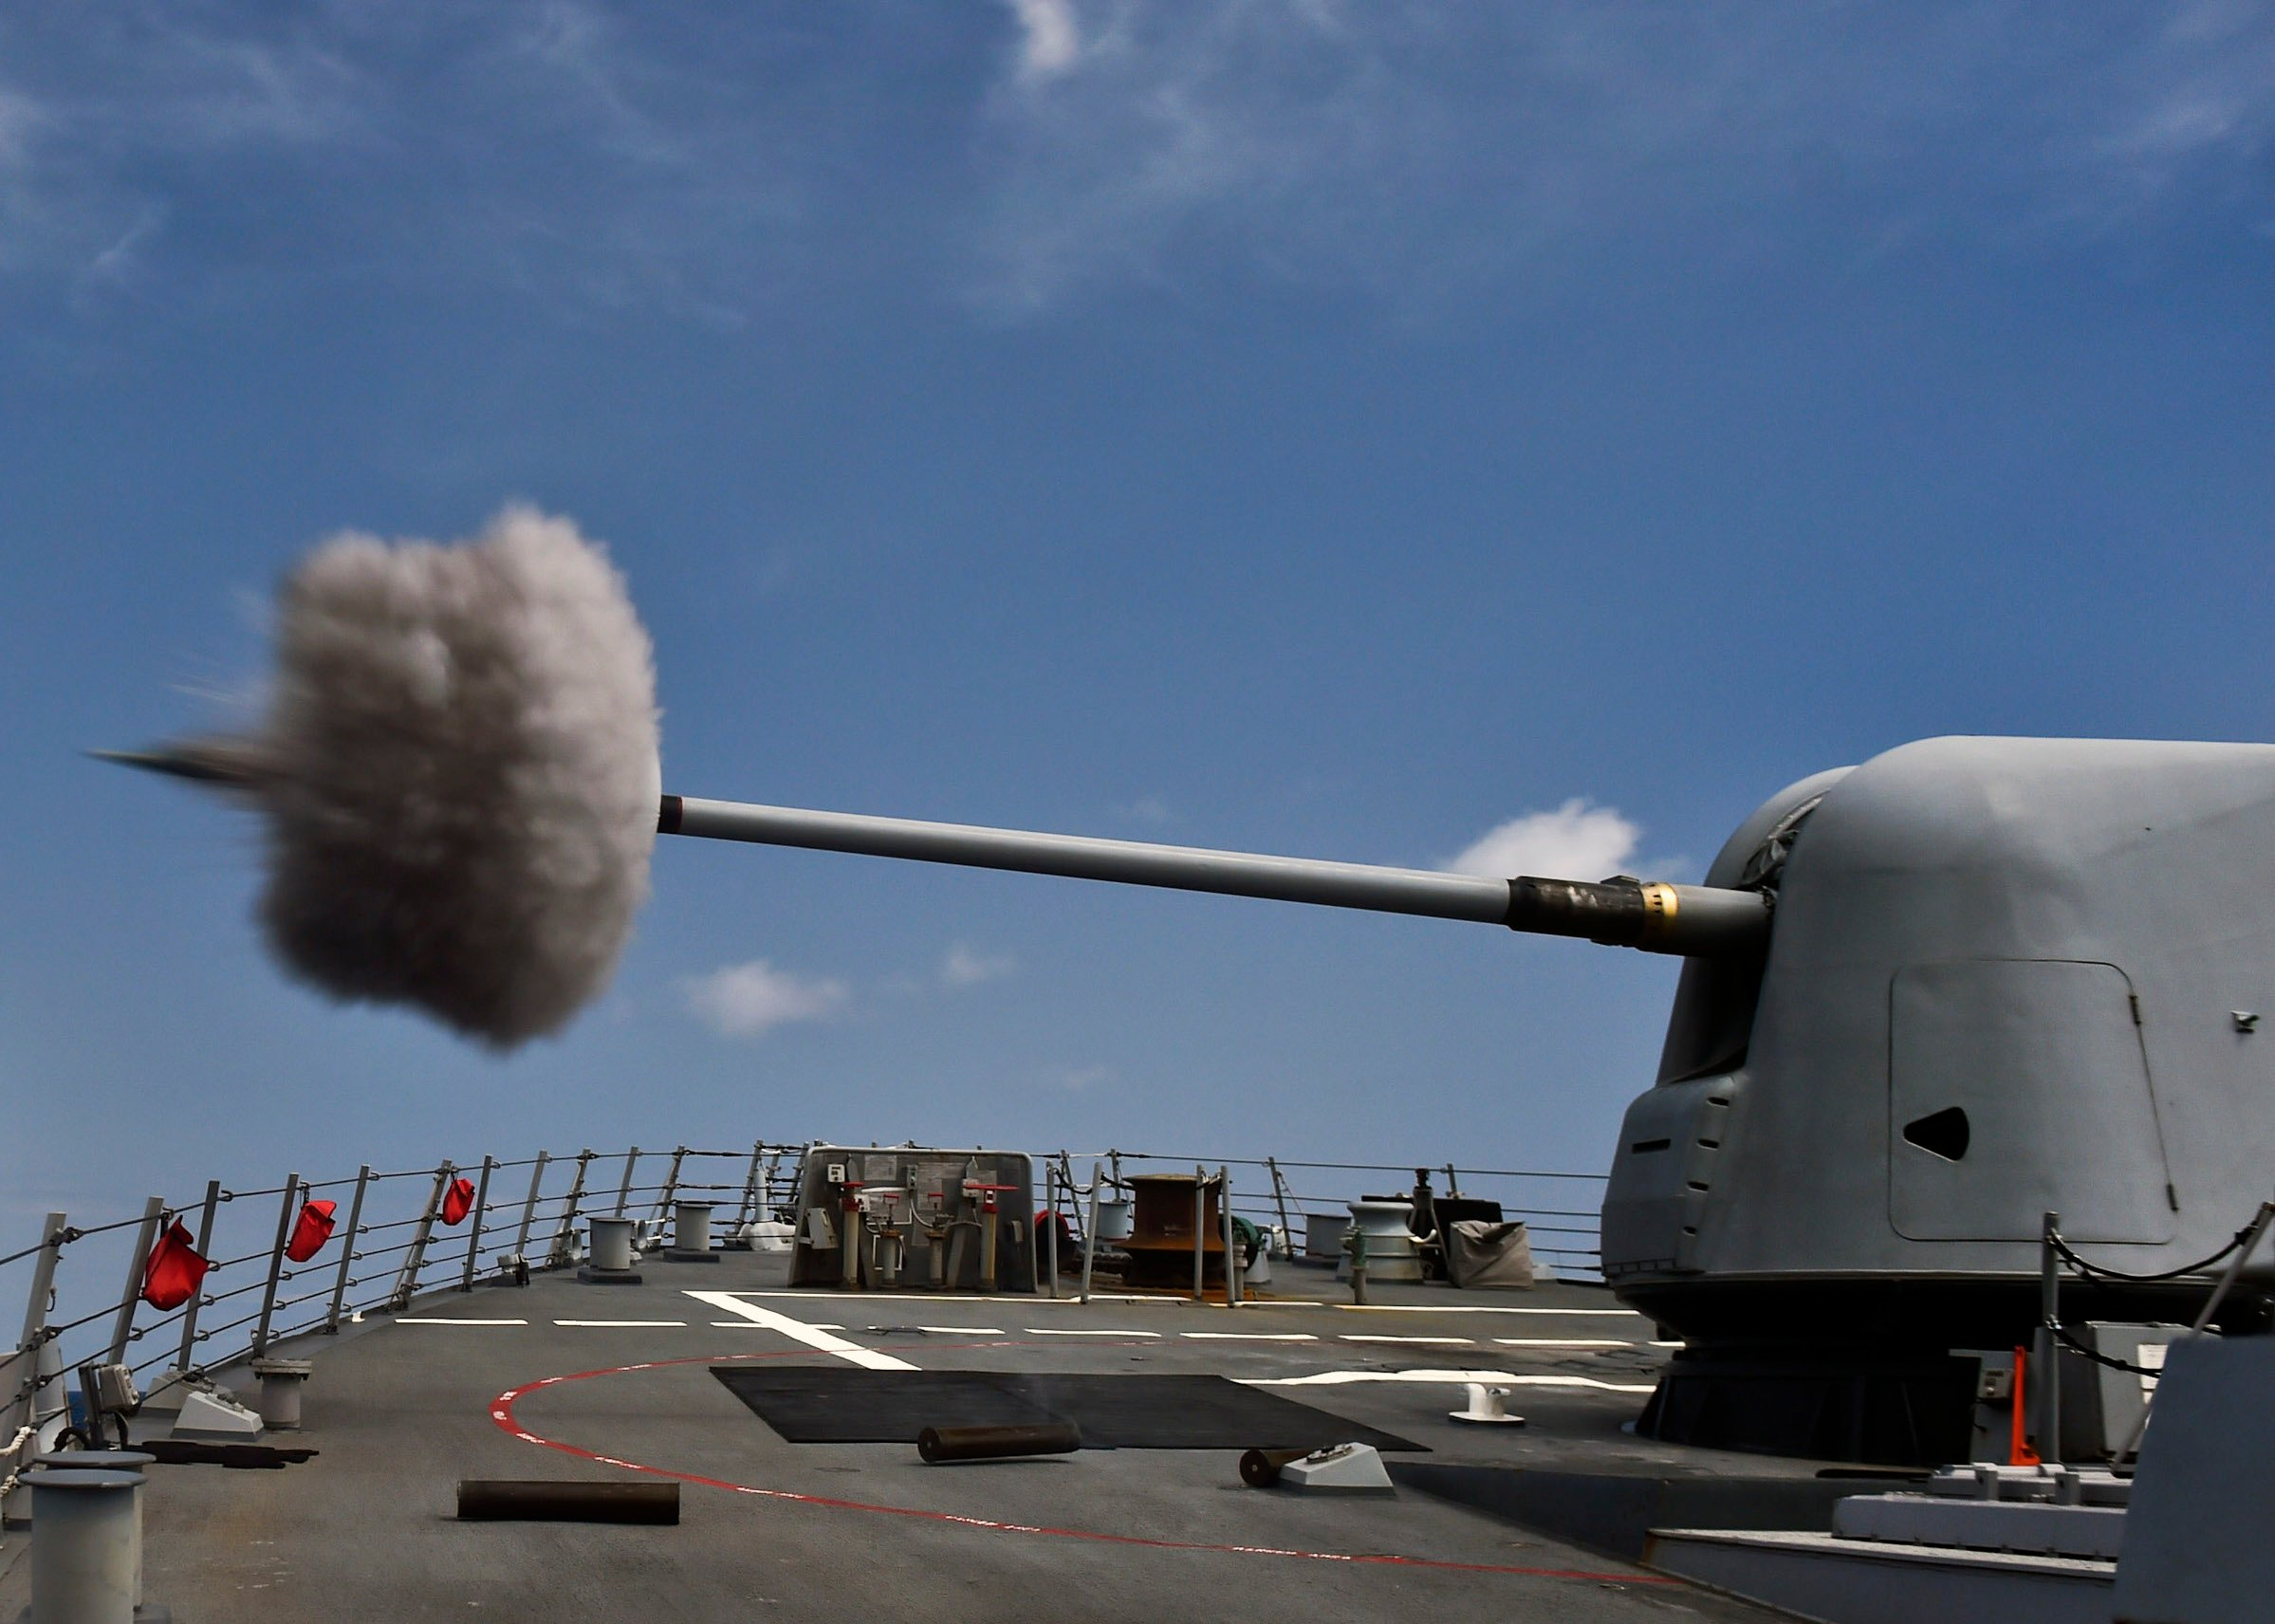 USS Porter (DDG-78) fires its MK 45 5-inch lightweight gun during a weapons training exercise on April 3, 2015. US Navy Photo